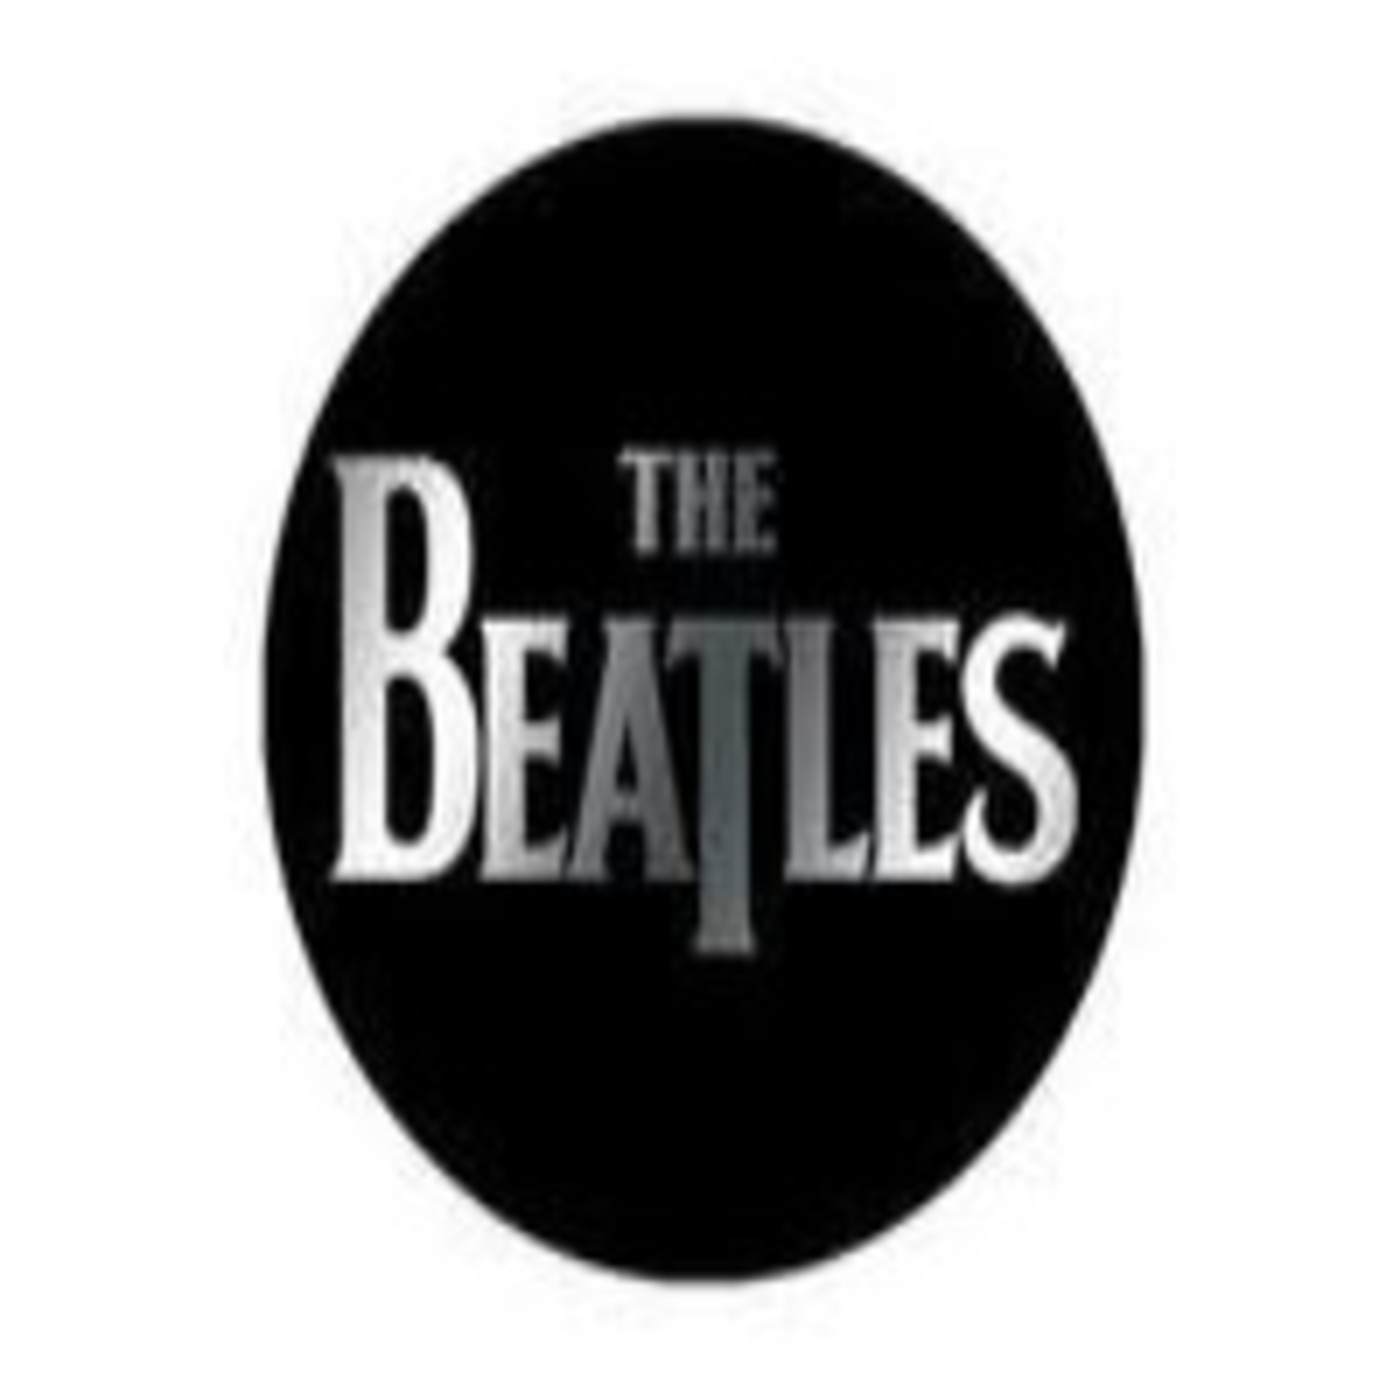 Podcast The music - The beatles